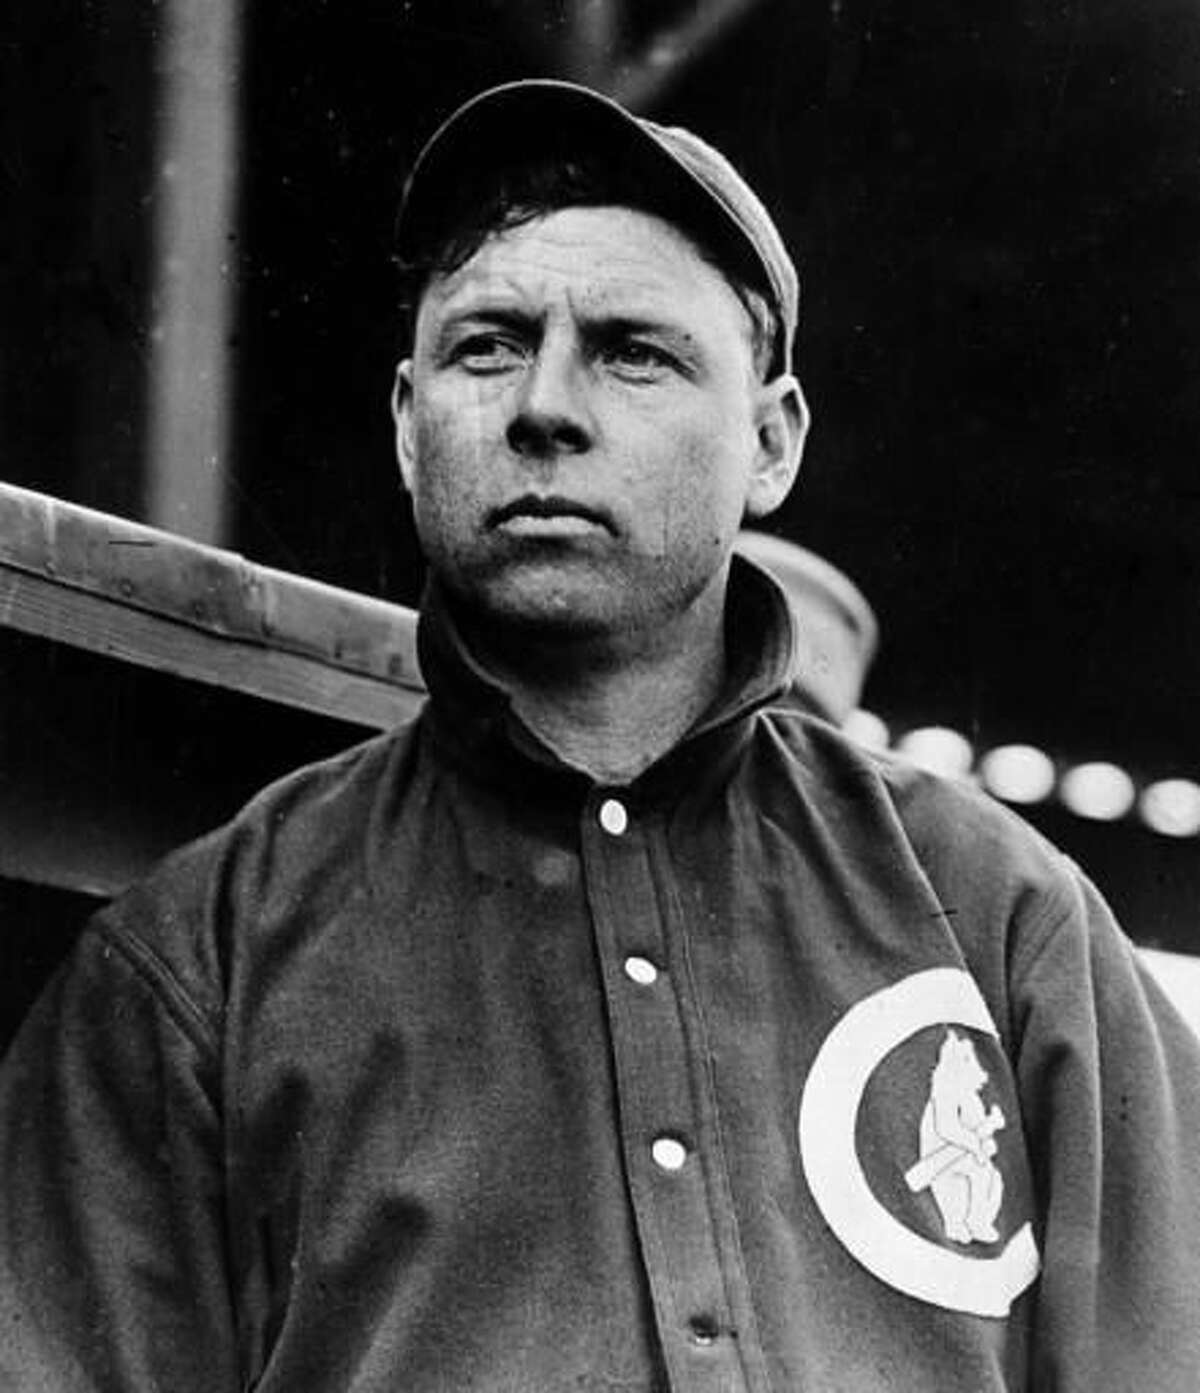 """FILE - In this 1912 file photo, Mordecai """"Three Finger"""" Brown, Chicago Cubs star pitcher, is shown in Chicago. Joe Tinker, Johnny Evers, Frank Chance and Brown helped lead the Chicago Cubs to their last World Series championship 108 years ago. (AP Photo/File)"""